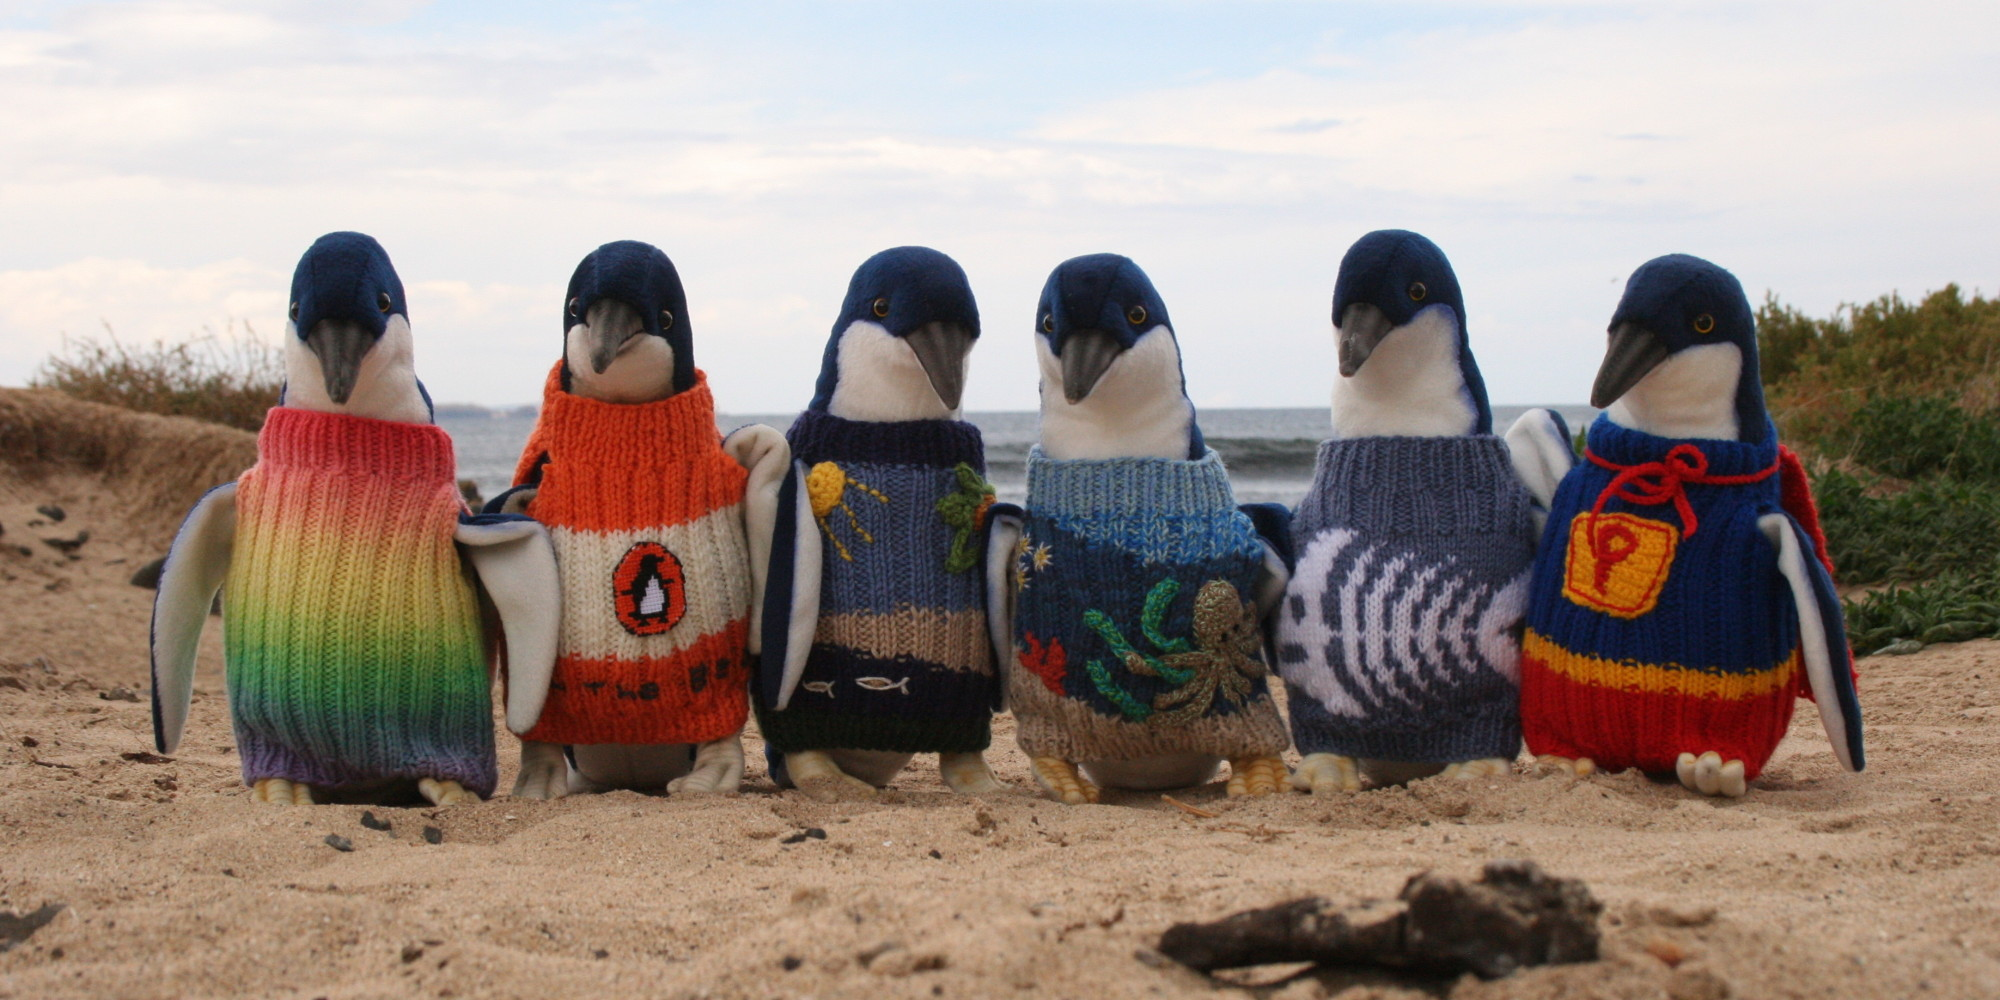 Australia\u0027s Oldest Man Knits Tiny Sweaters For Penguins Injured In Oil  Spills